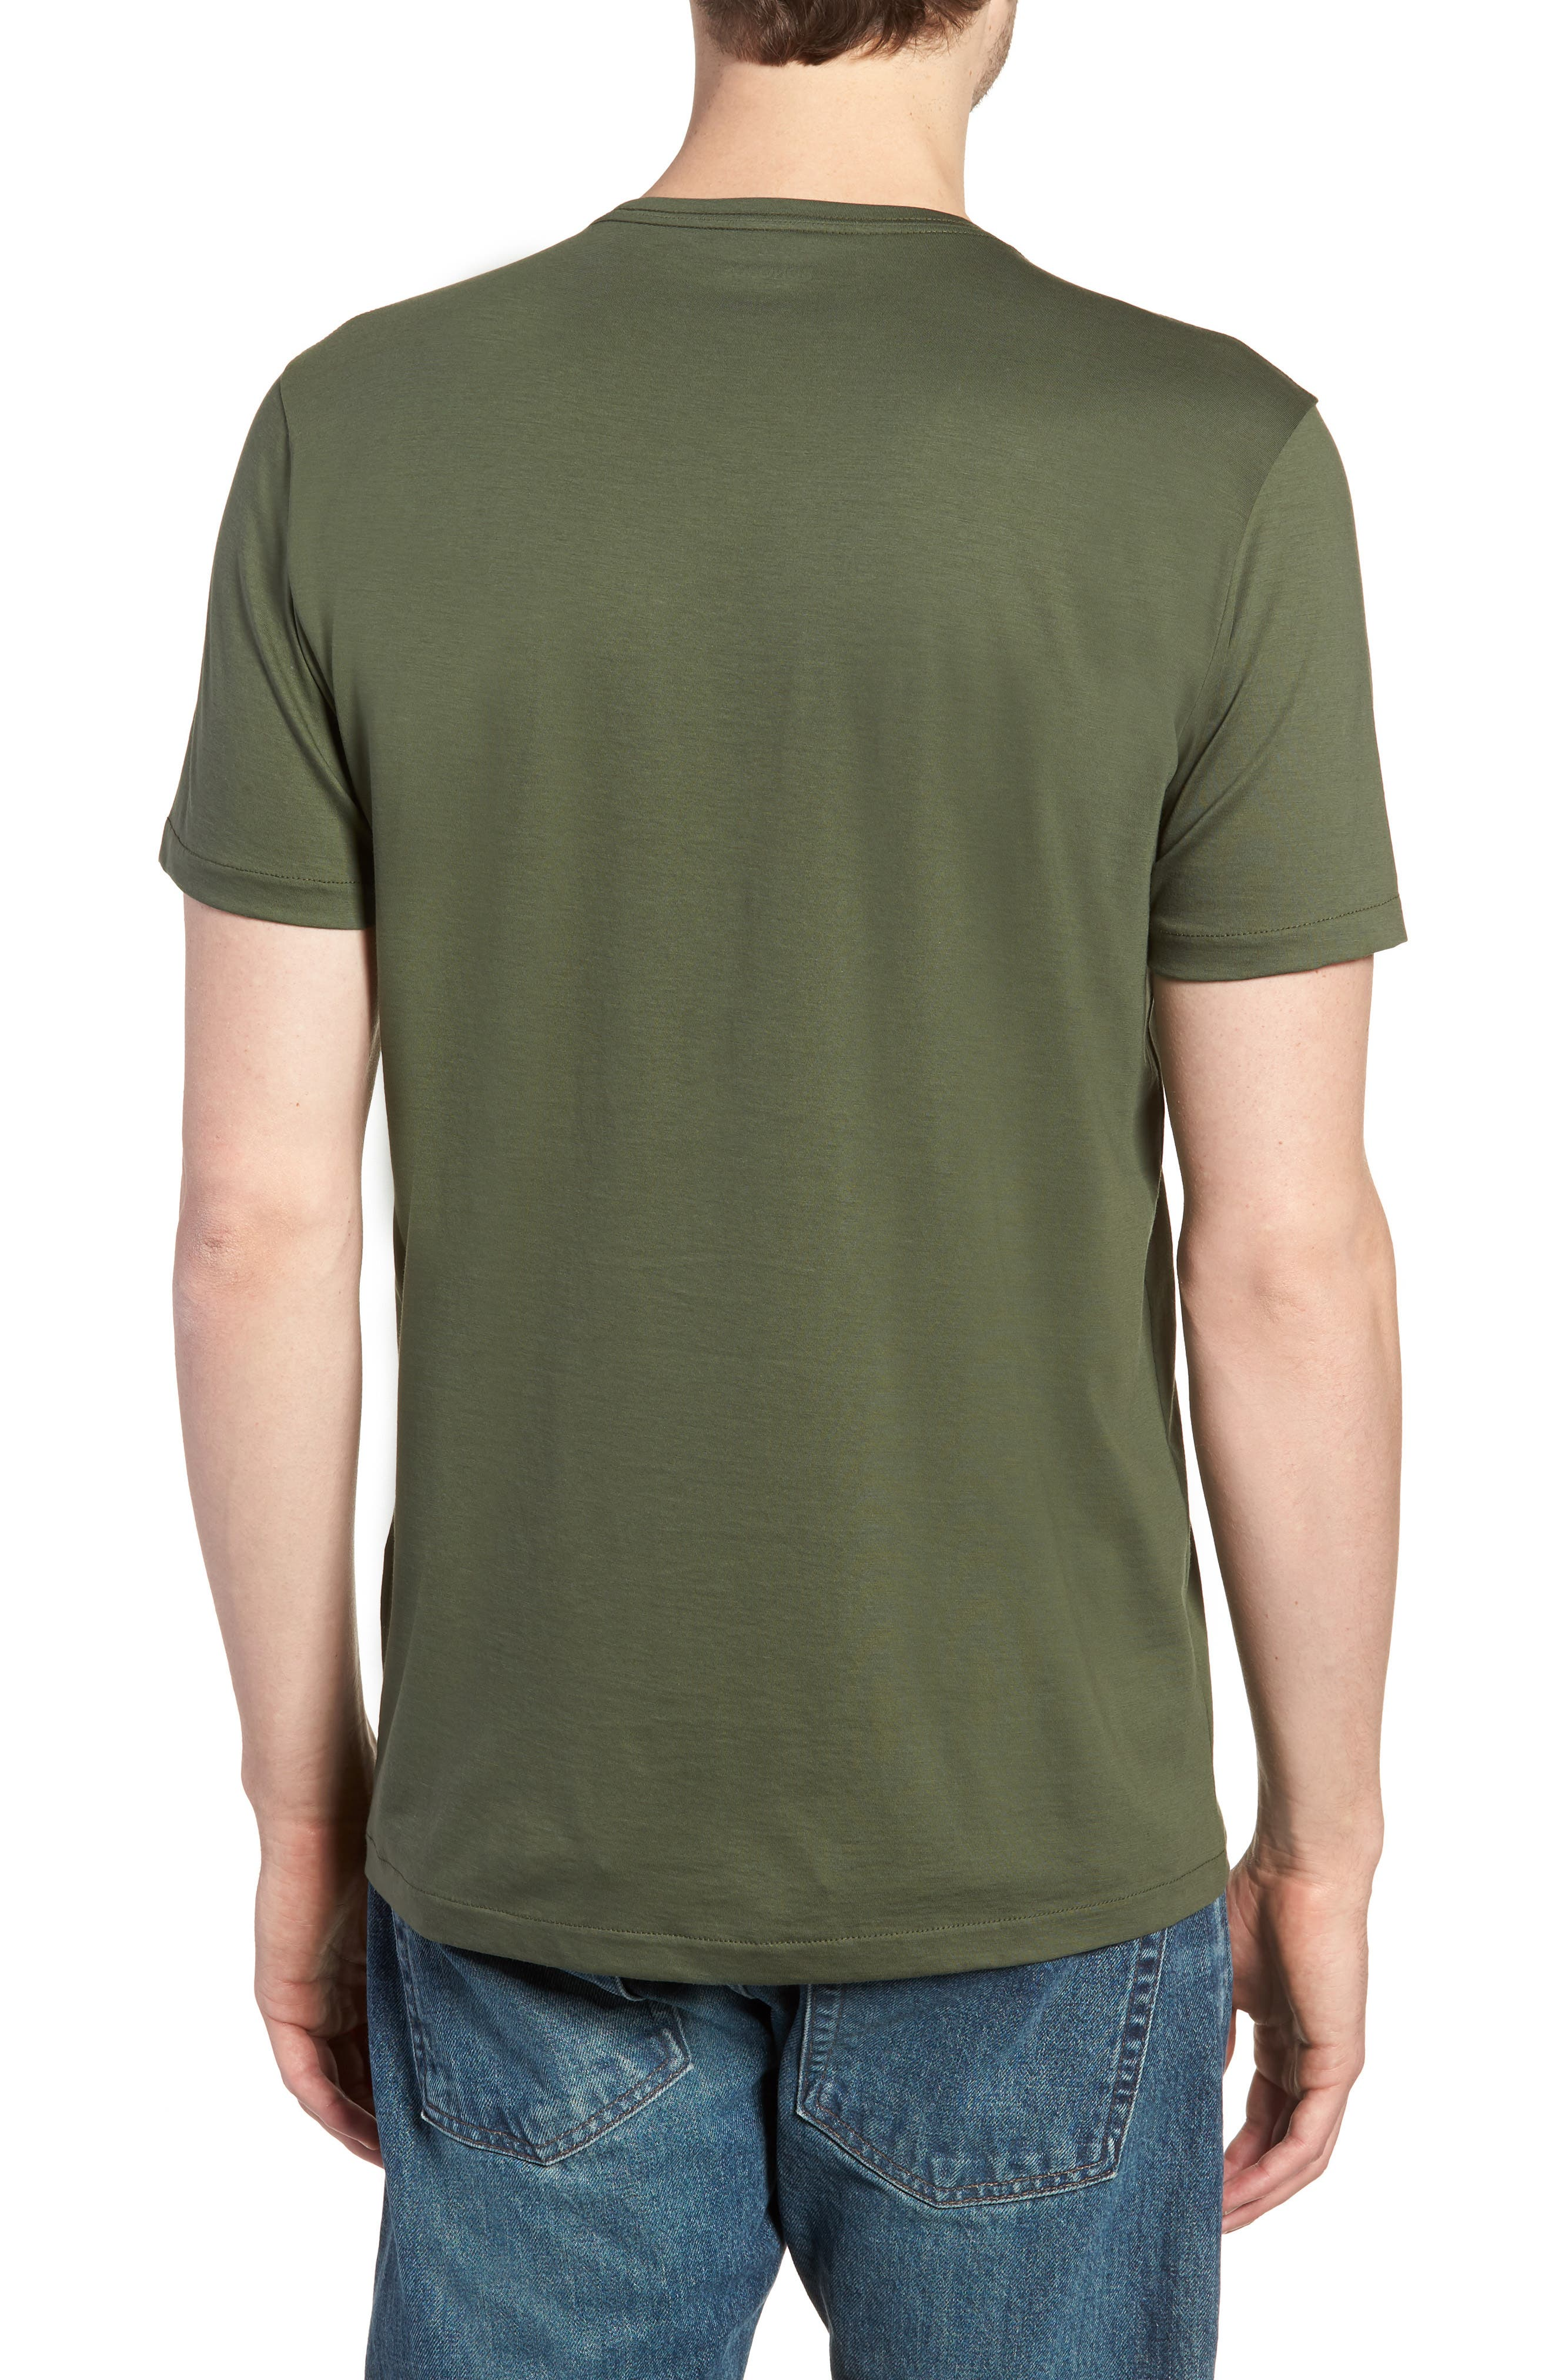 Refined T-Shirt,                             Alternate thumbnail 2, color,                             300